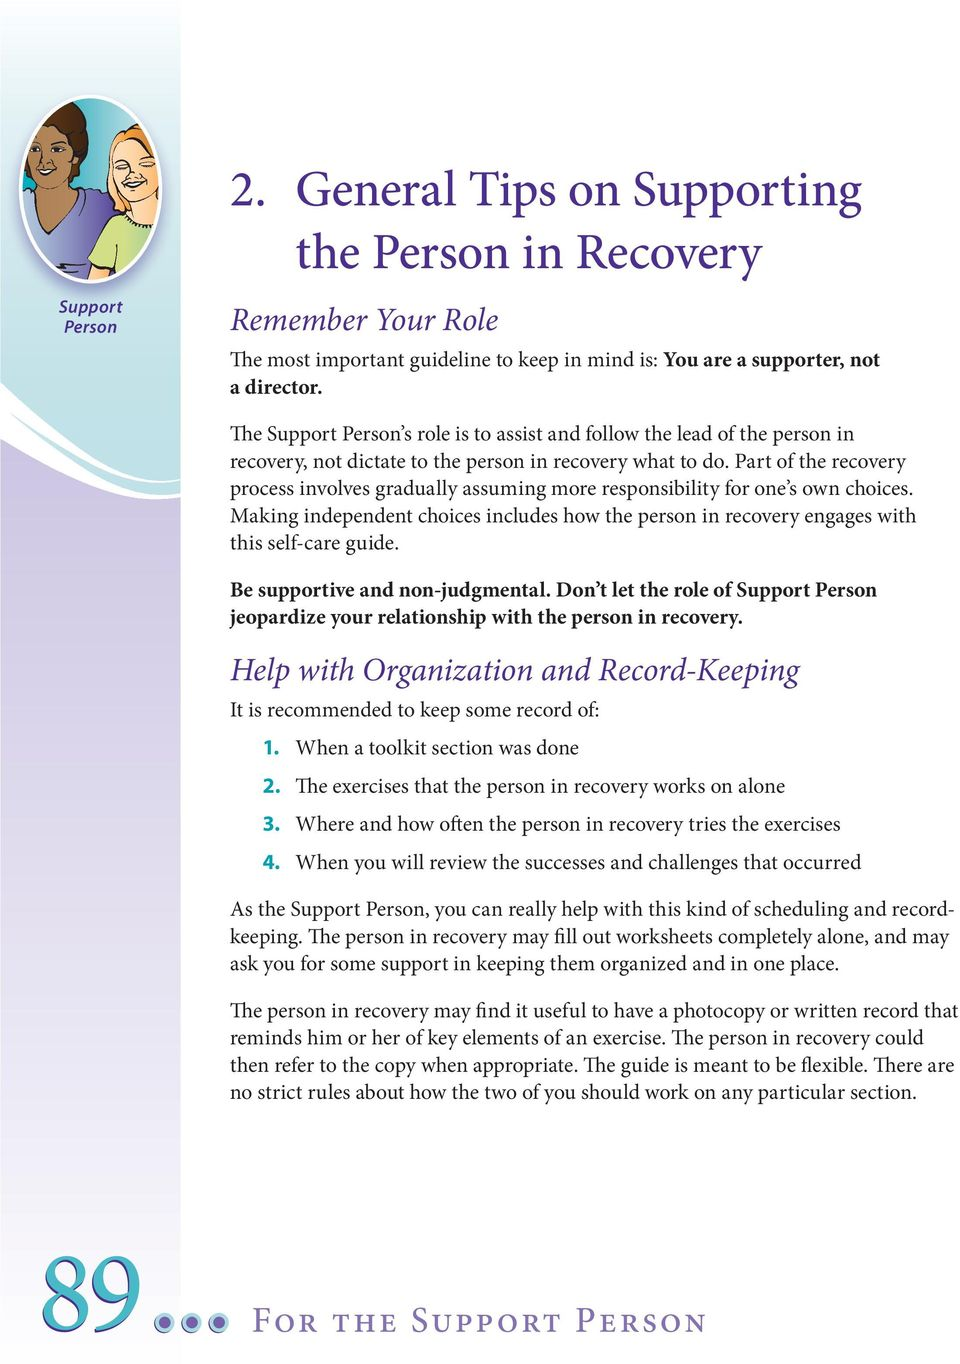 Part of the recovery process involves gradually assuming more responsibility for one s own choices. Making independent choices includes how the person in recovery engages with this self-care guide.